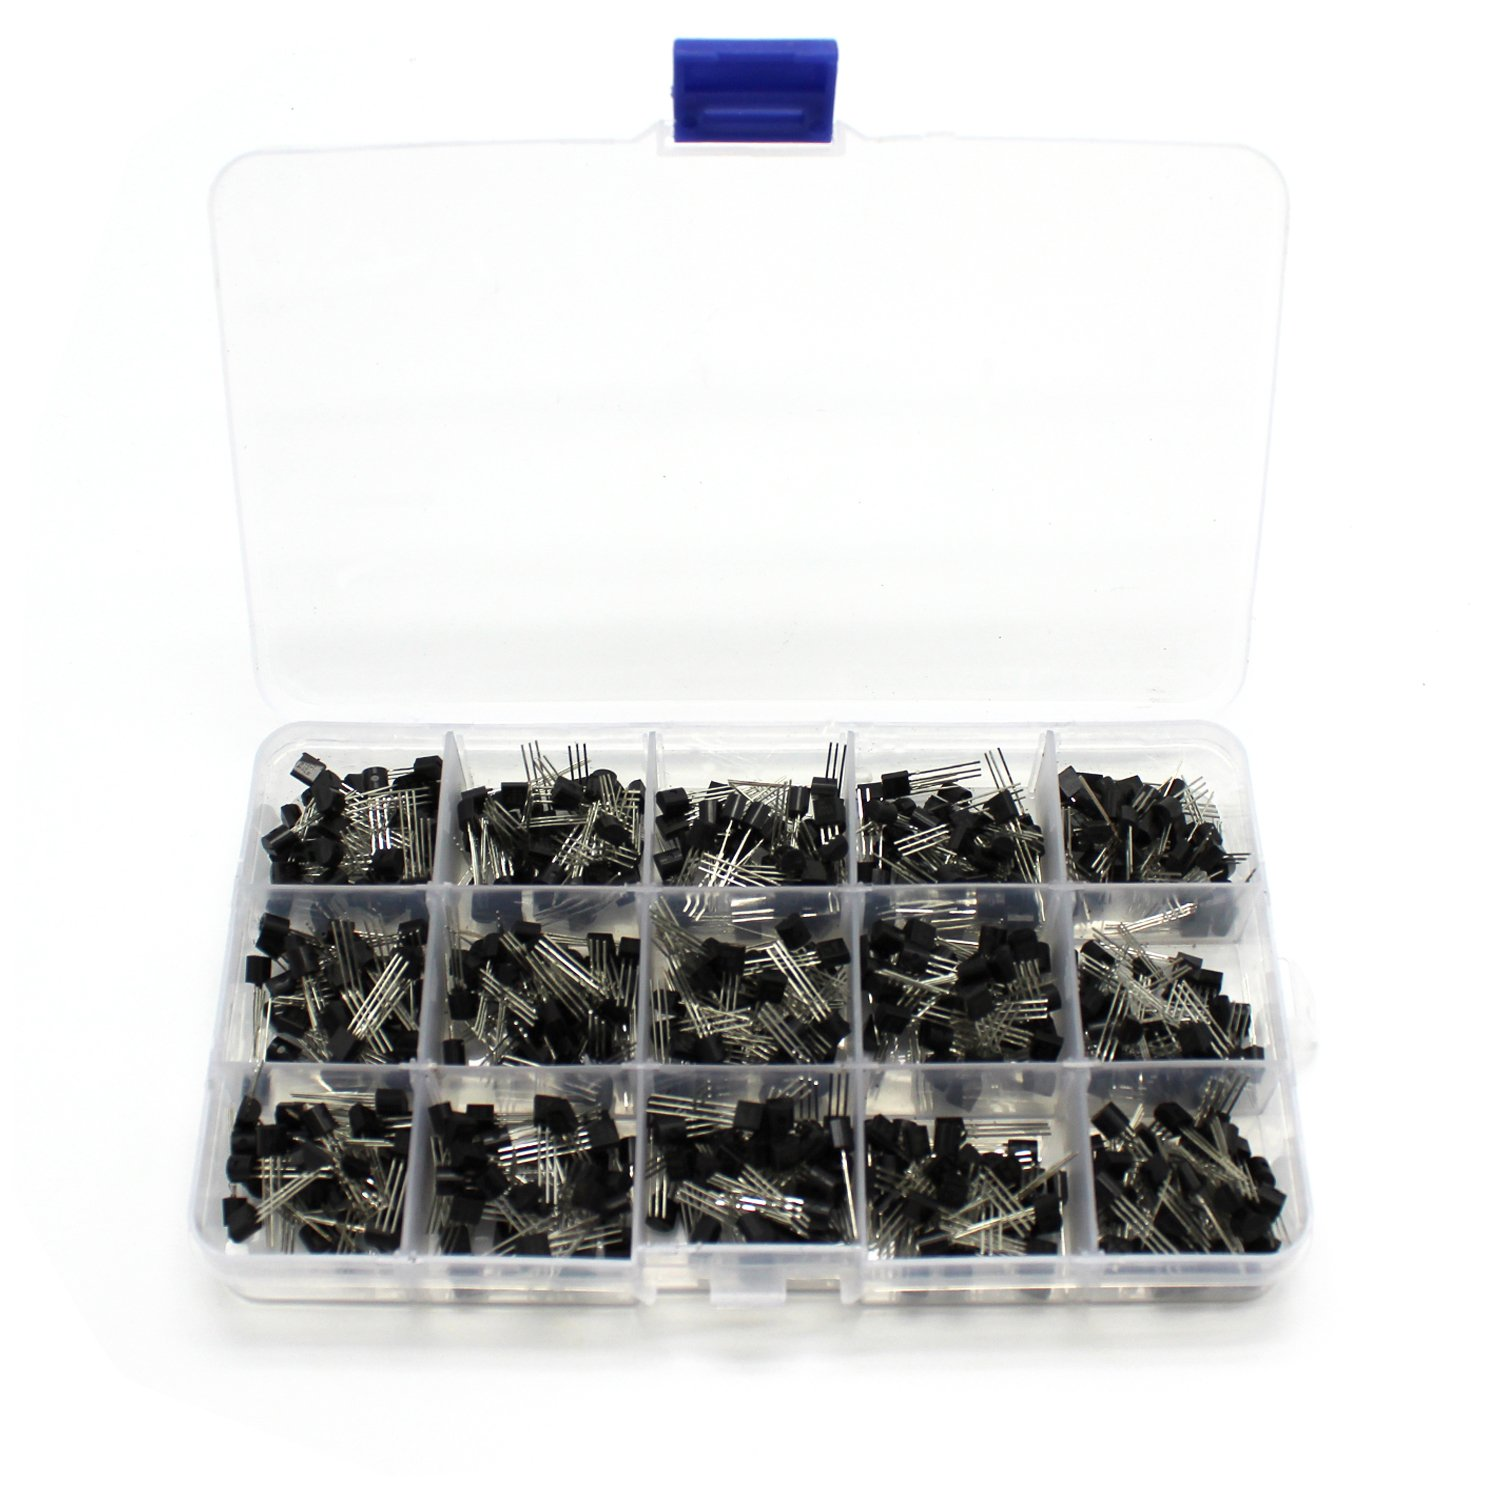 NPN / PNP Transistor Assortment Kit, ICEBLUEOR 15Values 600PCS NPN PNP Power Transistor Assortment Assorted Kit Set 2N2222-S9018 with Clear Plastic Box